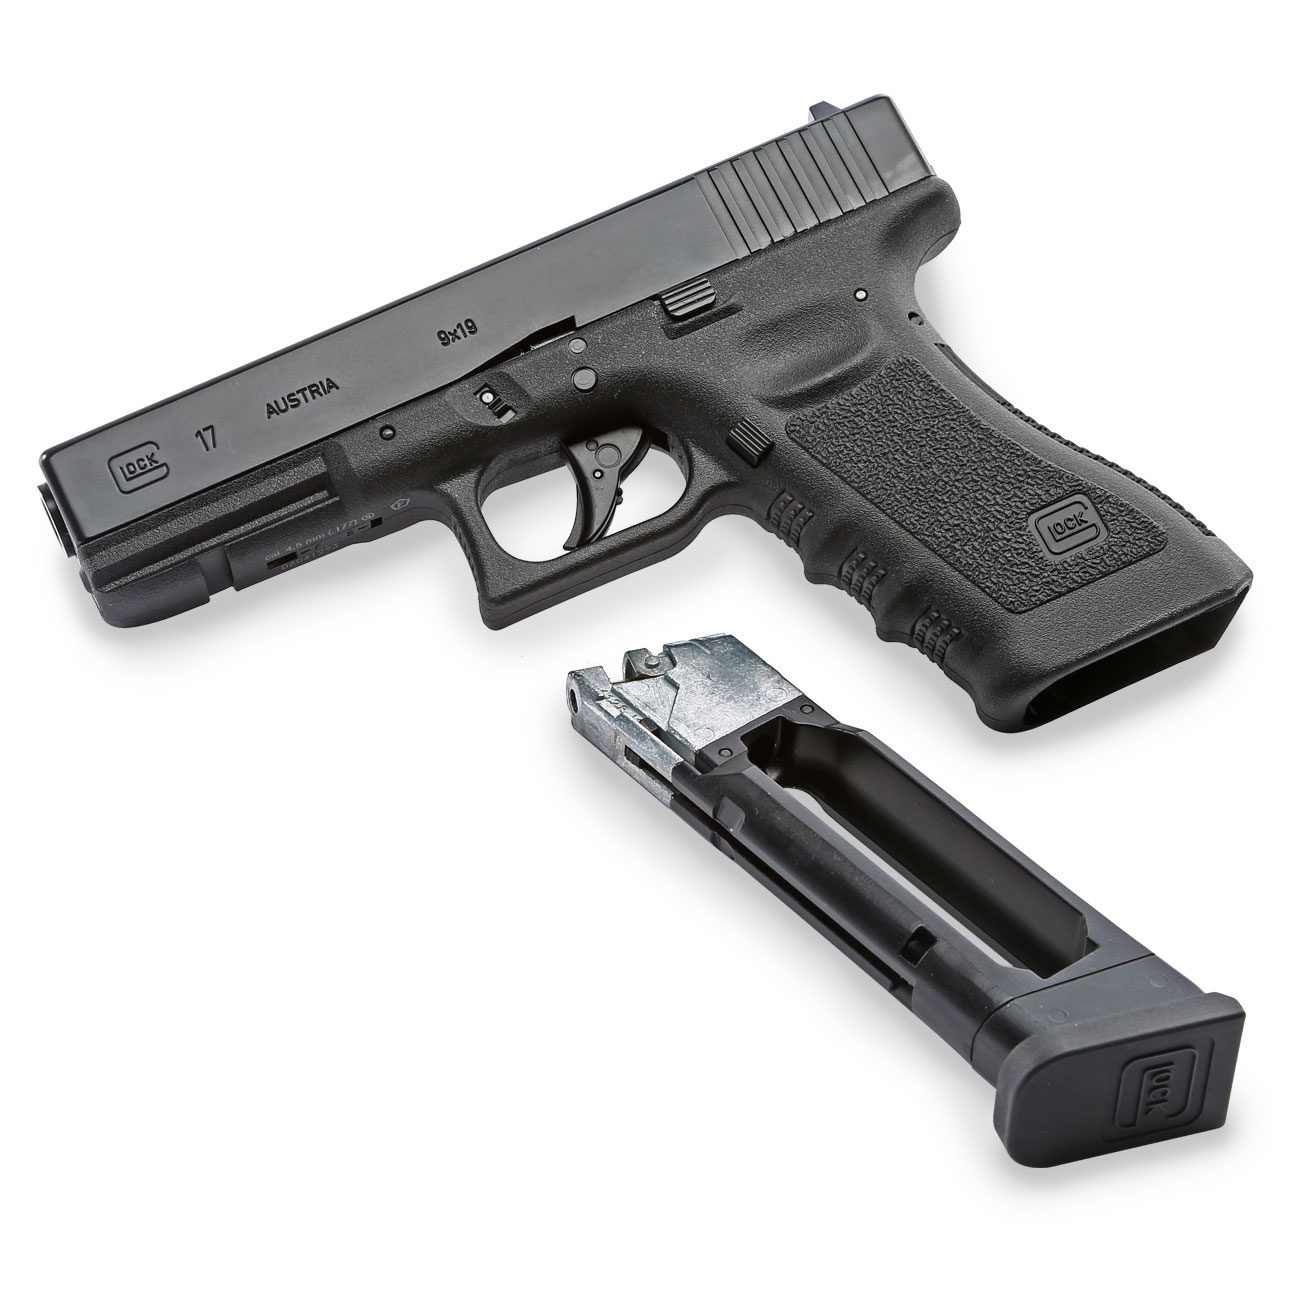 Glock 17 CO2 Luftpistole Kal. 4,5 mm BB 6